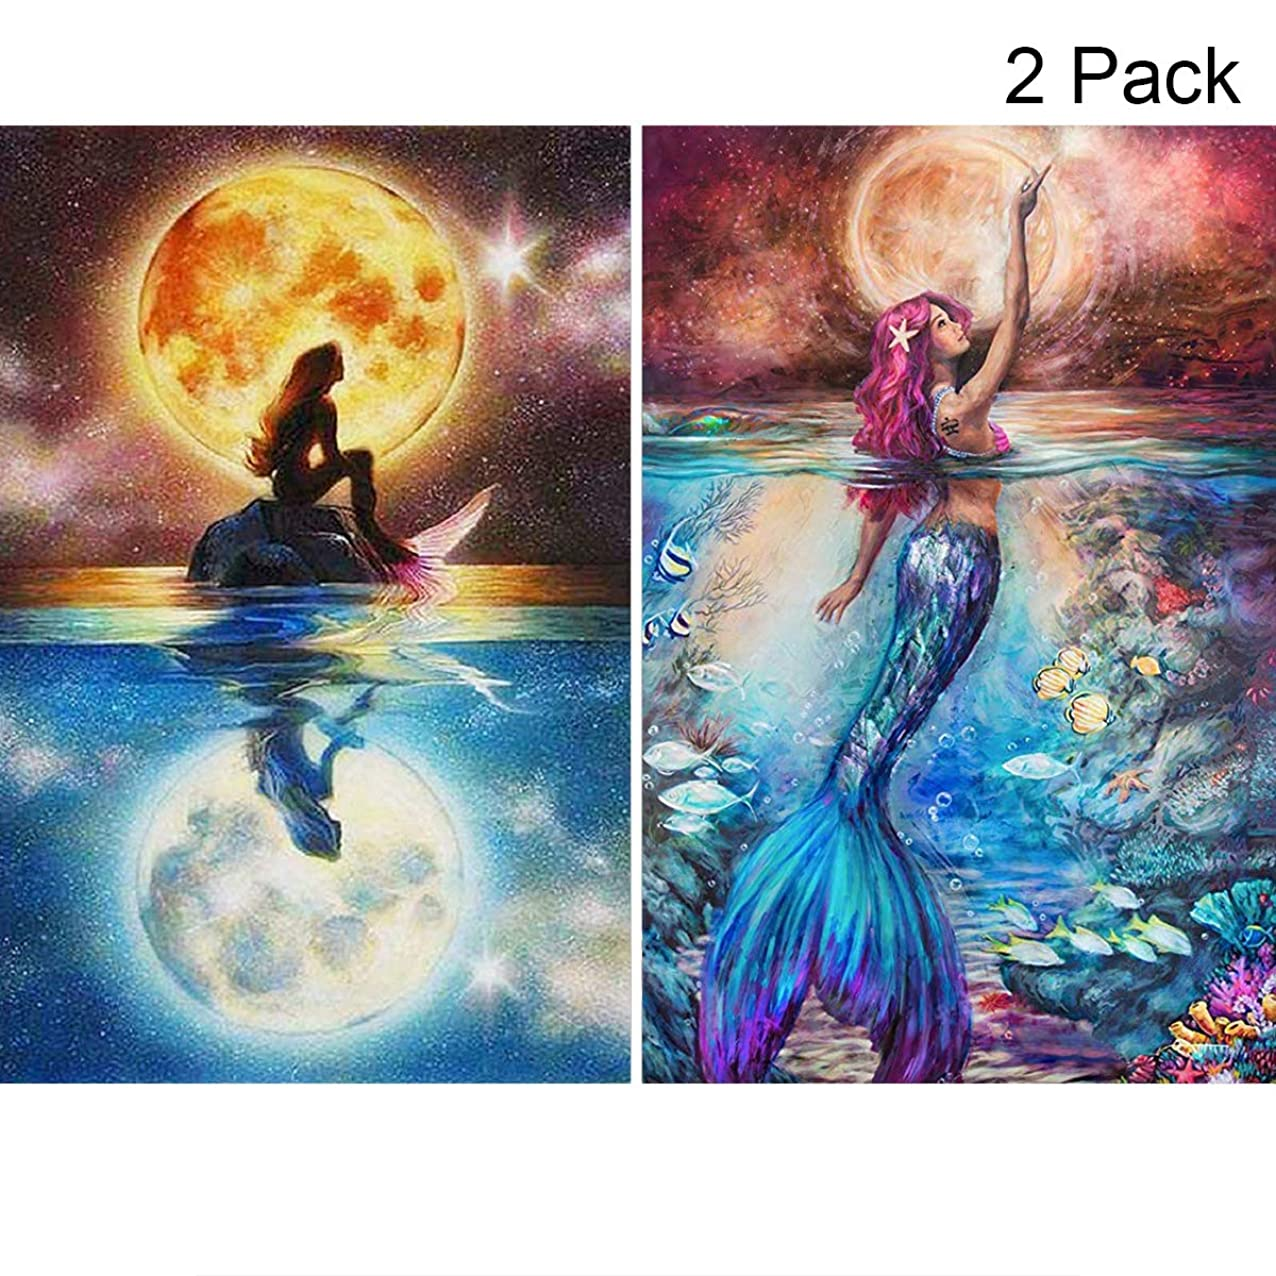 2 Pack 5D Full Drill Diamond Painting Kit, Mikimiqi DIY Diamond Rhinestone Painting Kits for Adults and Beginner Embroidery Arts Craft Home Decor, 15.8 X 11.8 Inch (Mermaid Diamond Painting) zbsqokncwpwmc843